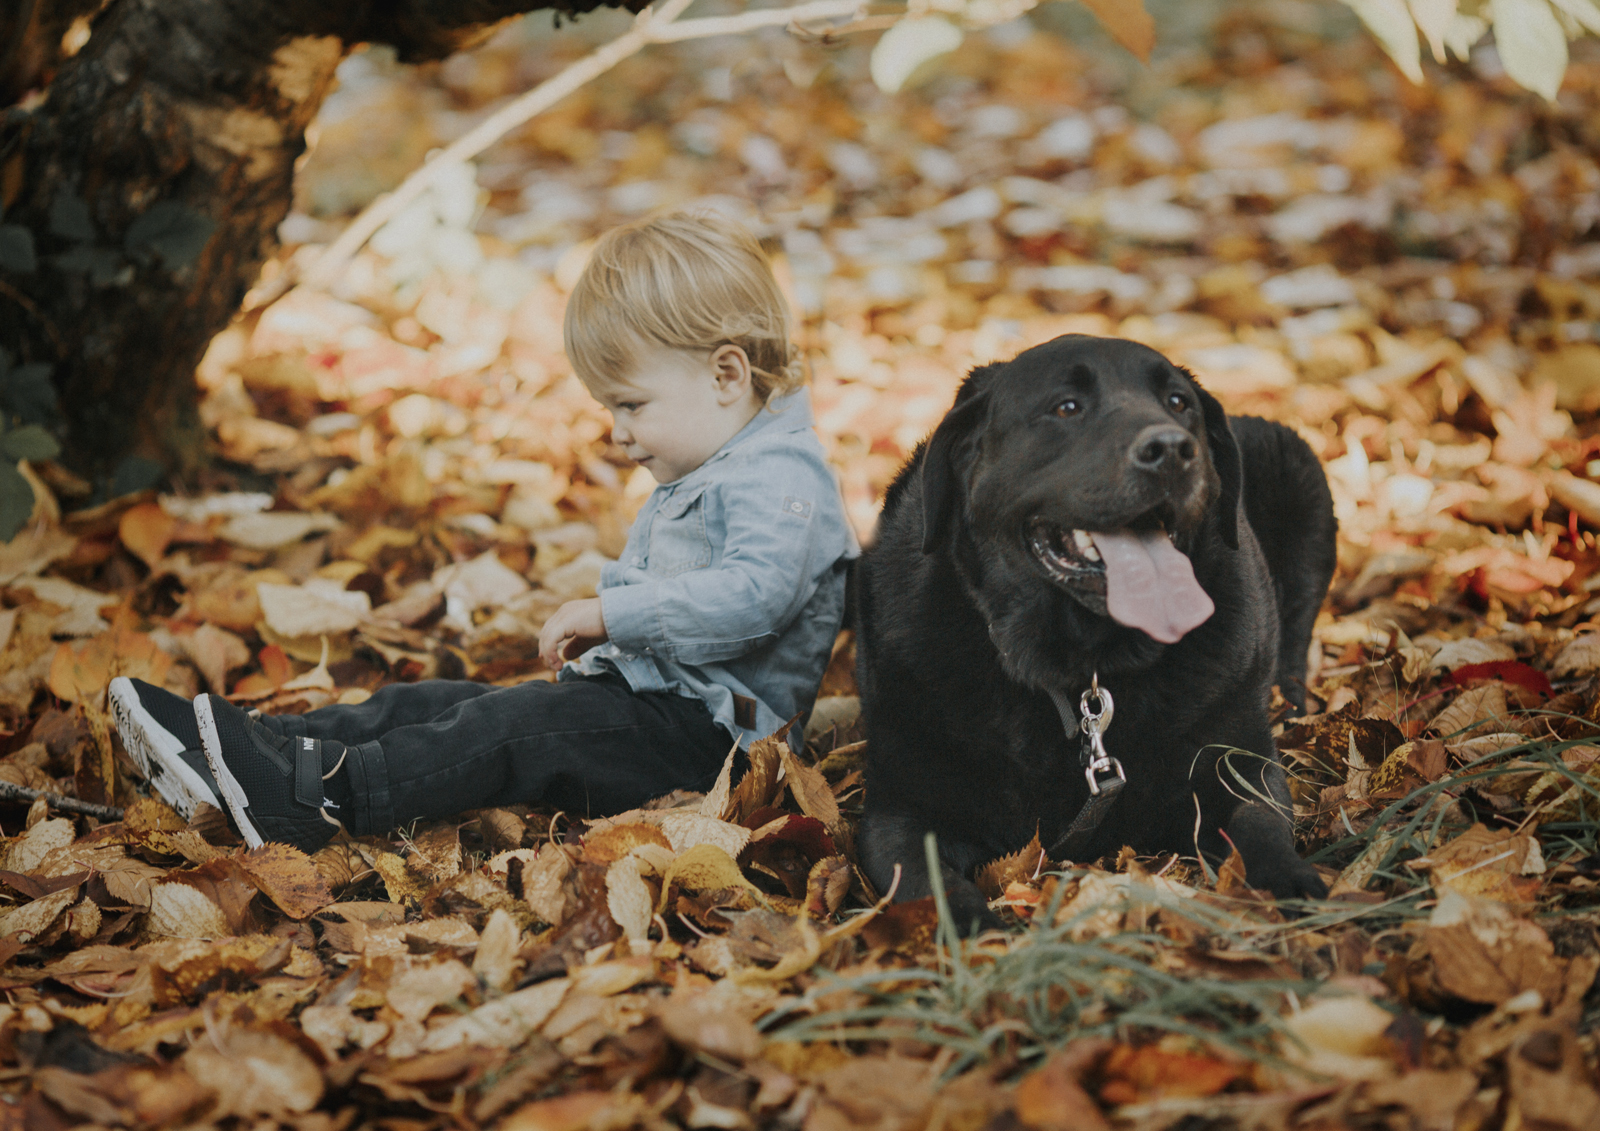 Little toddler and his dog